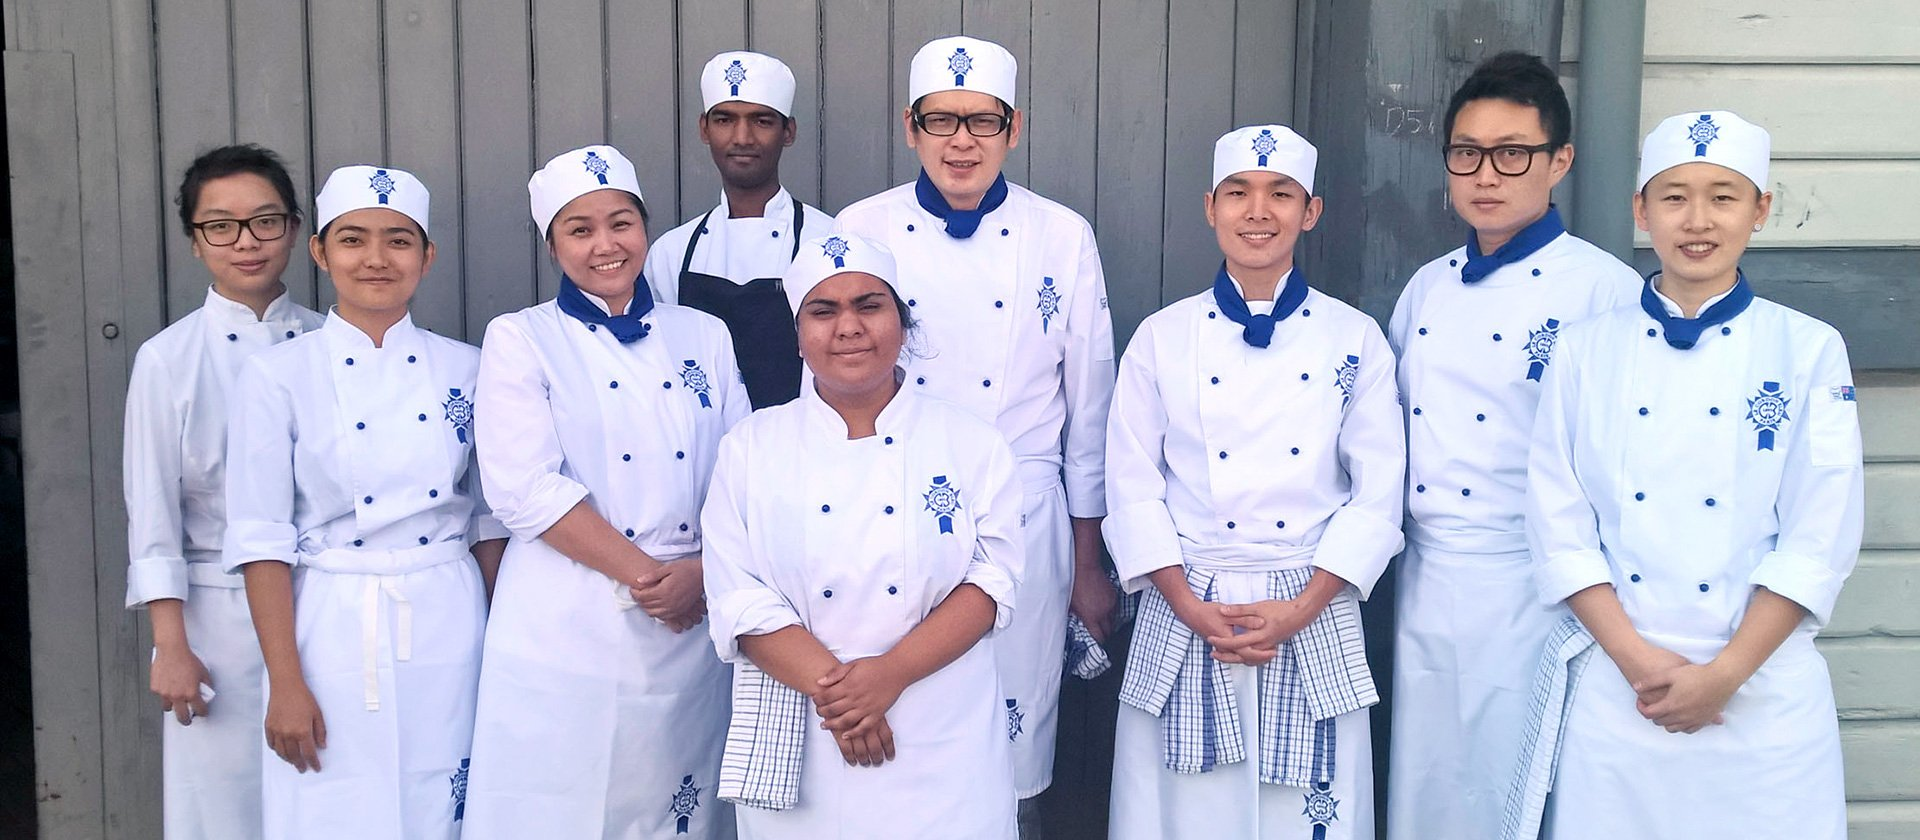 Le Cordon Bleu Sydney students cater high profile lunch